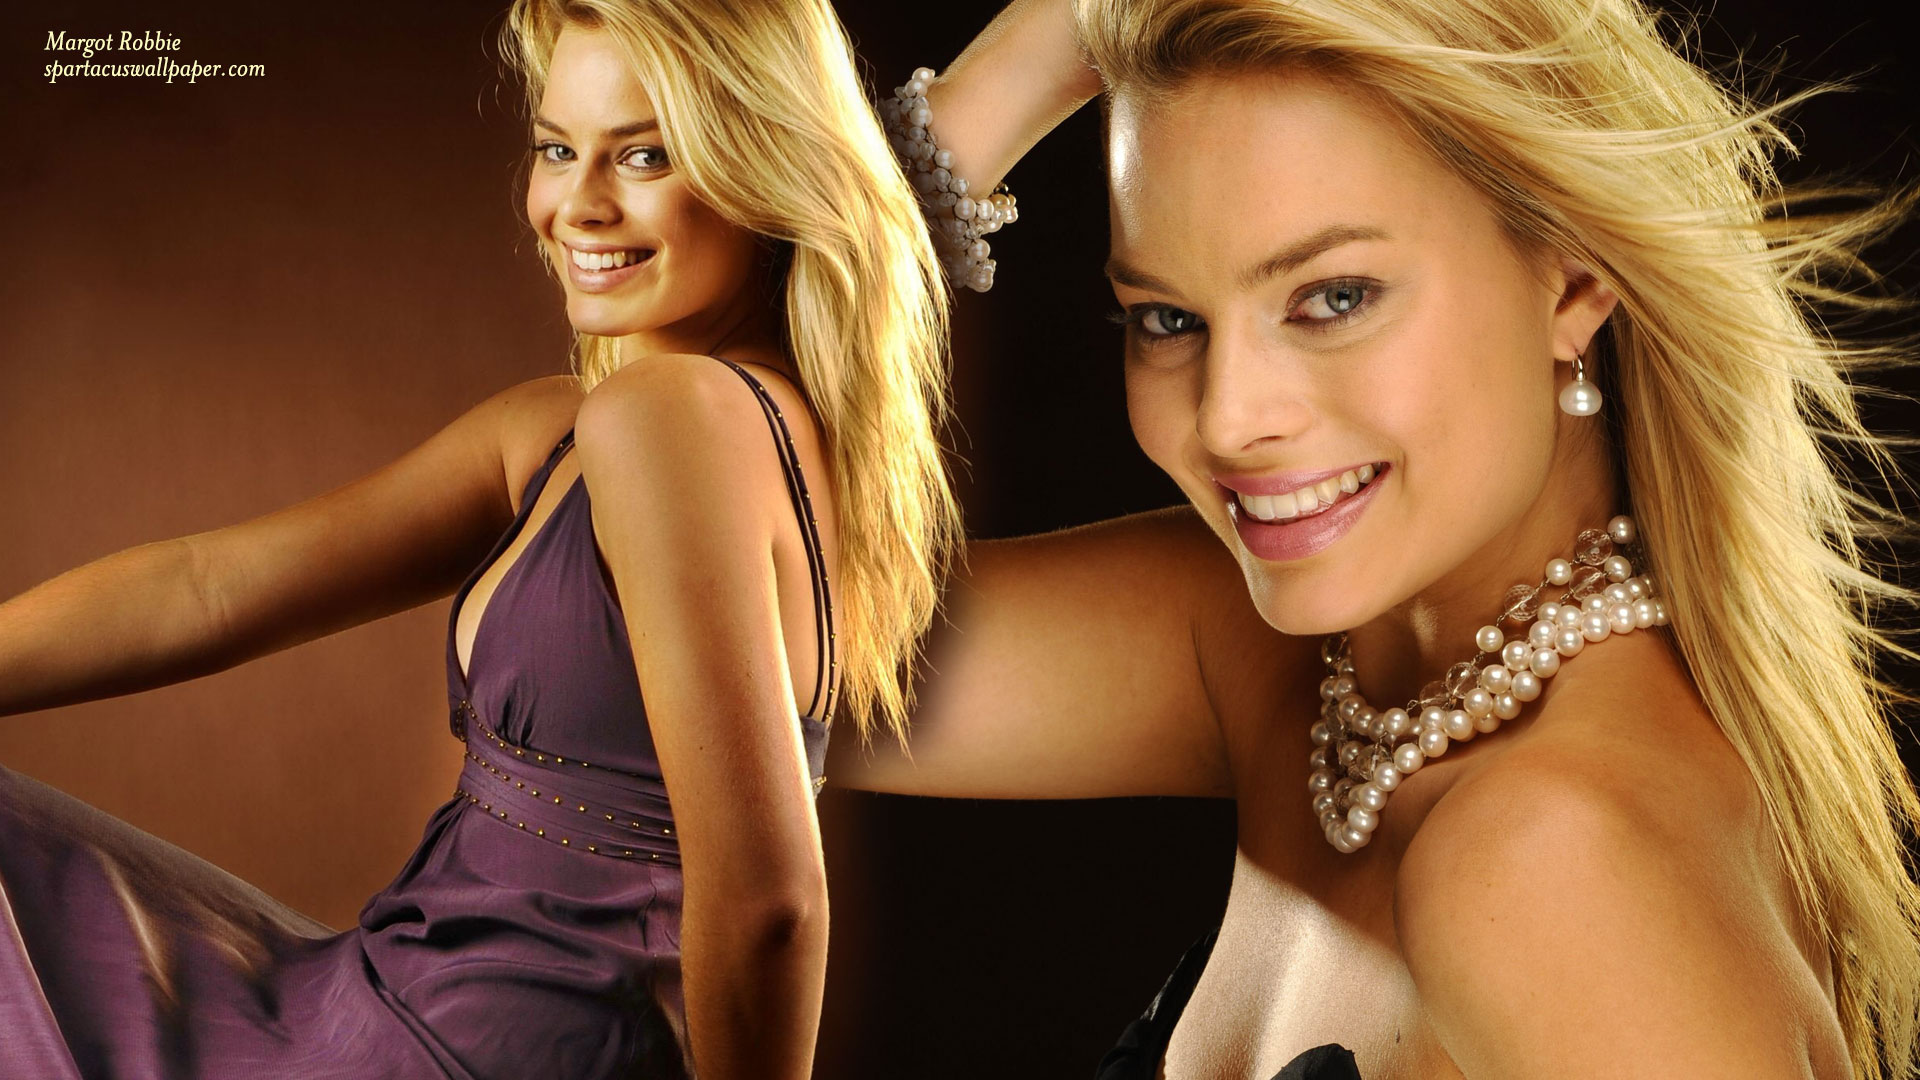 Margot Robbie III Desktop Backgrounds Mobile Home 1920x1080